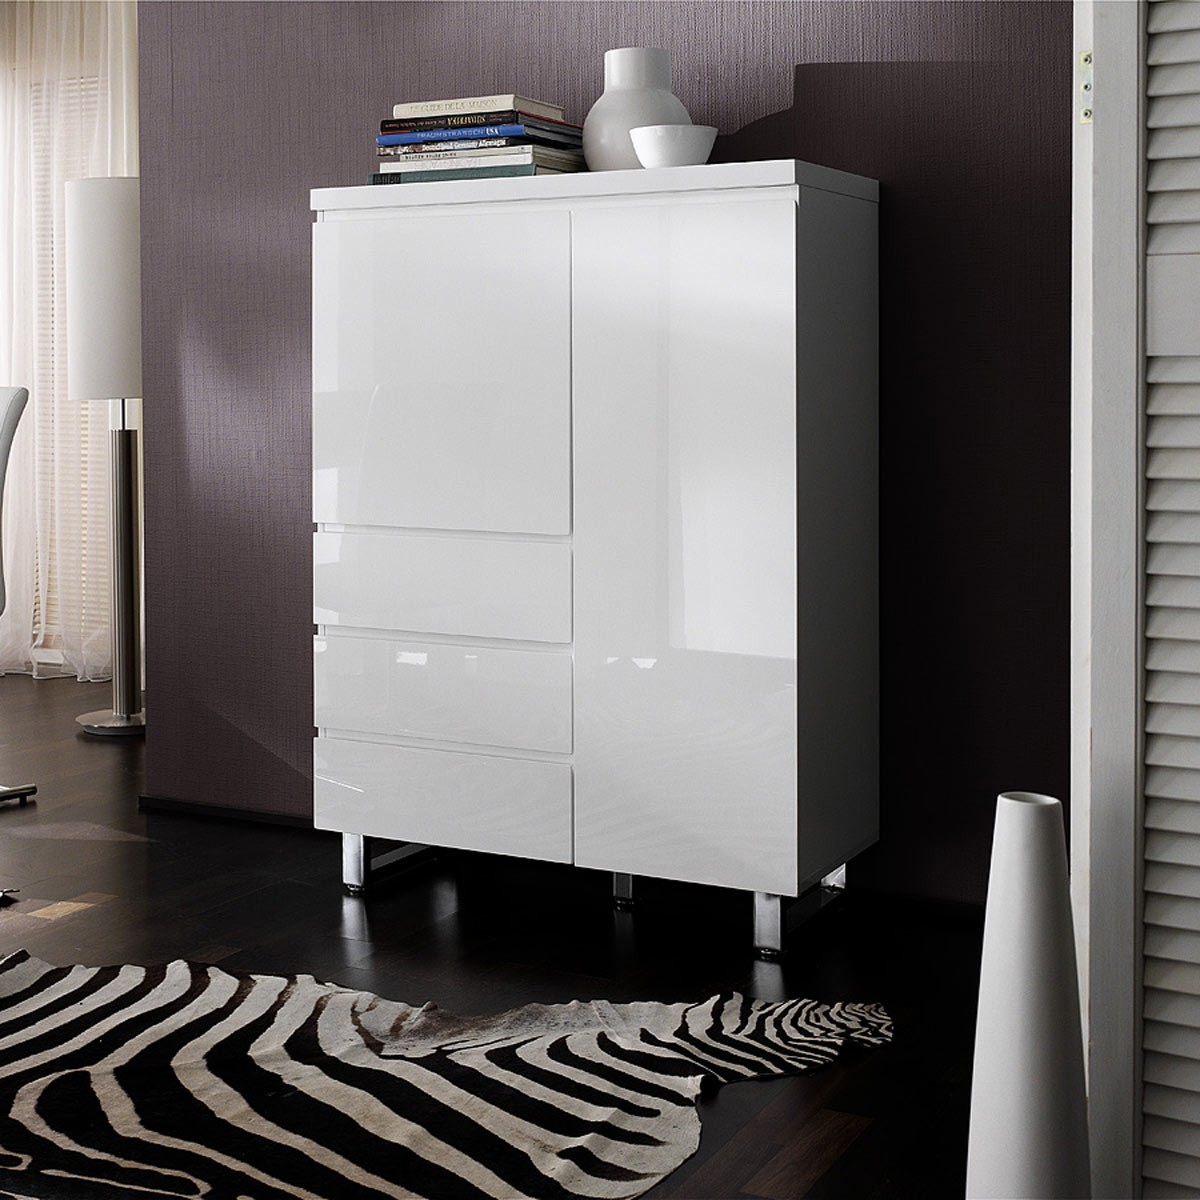 5126 highboard hochglanz weiss modern 1200 1200. Black Bedroom Furniture Sets. Home Design Ideas